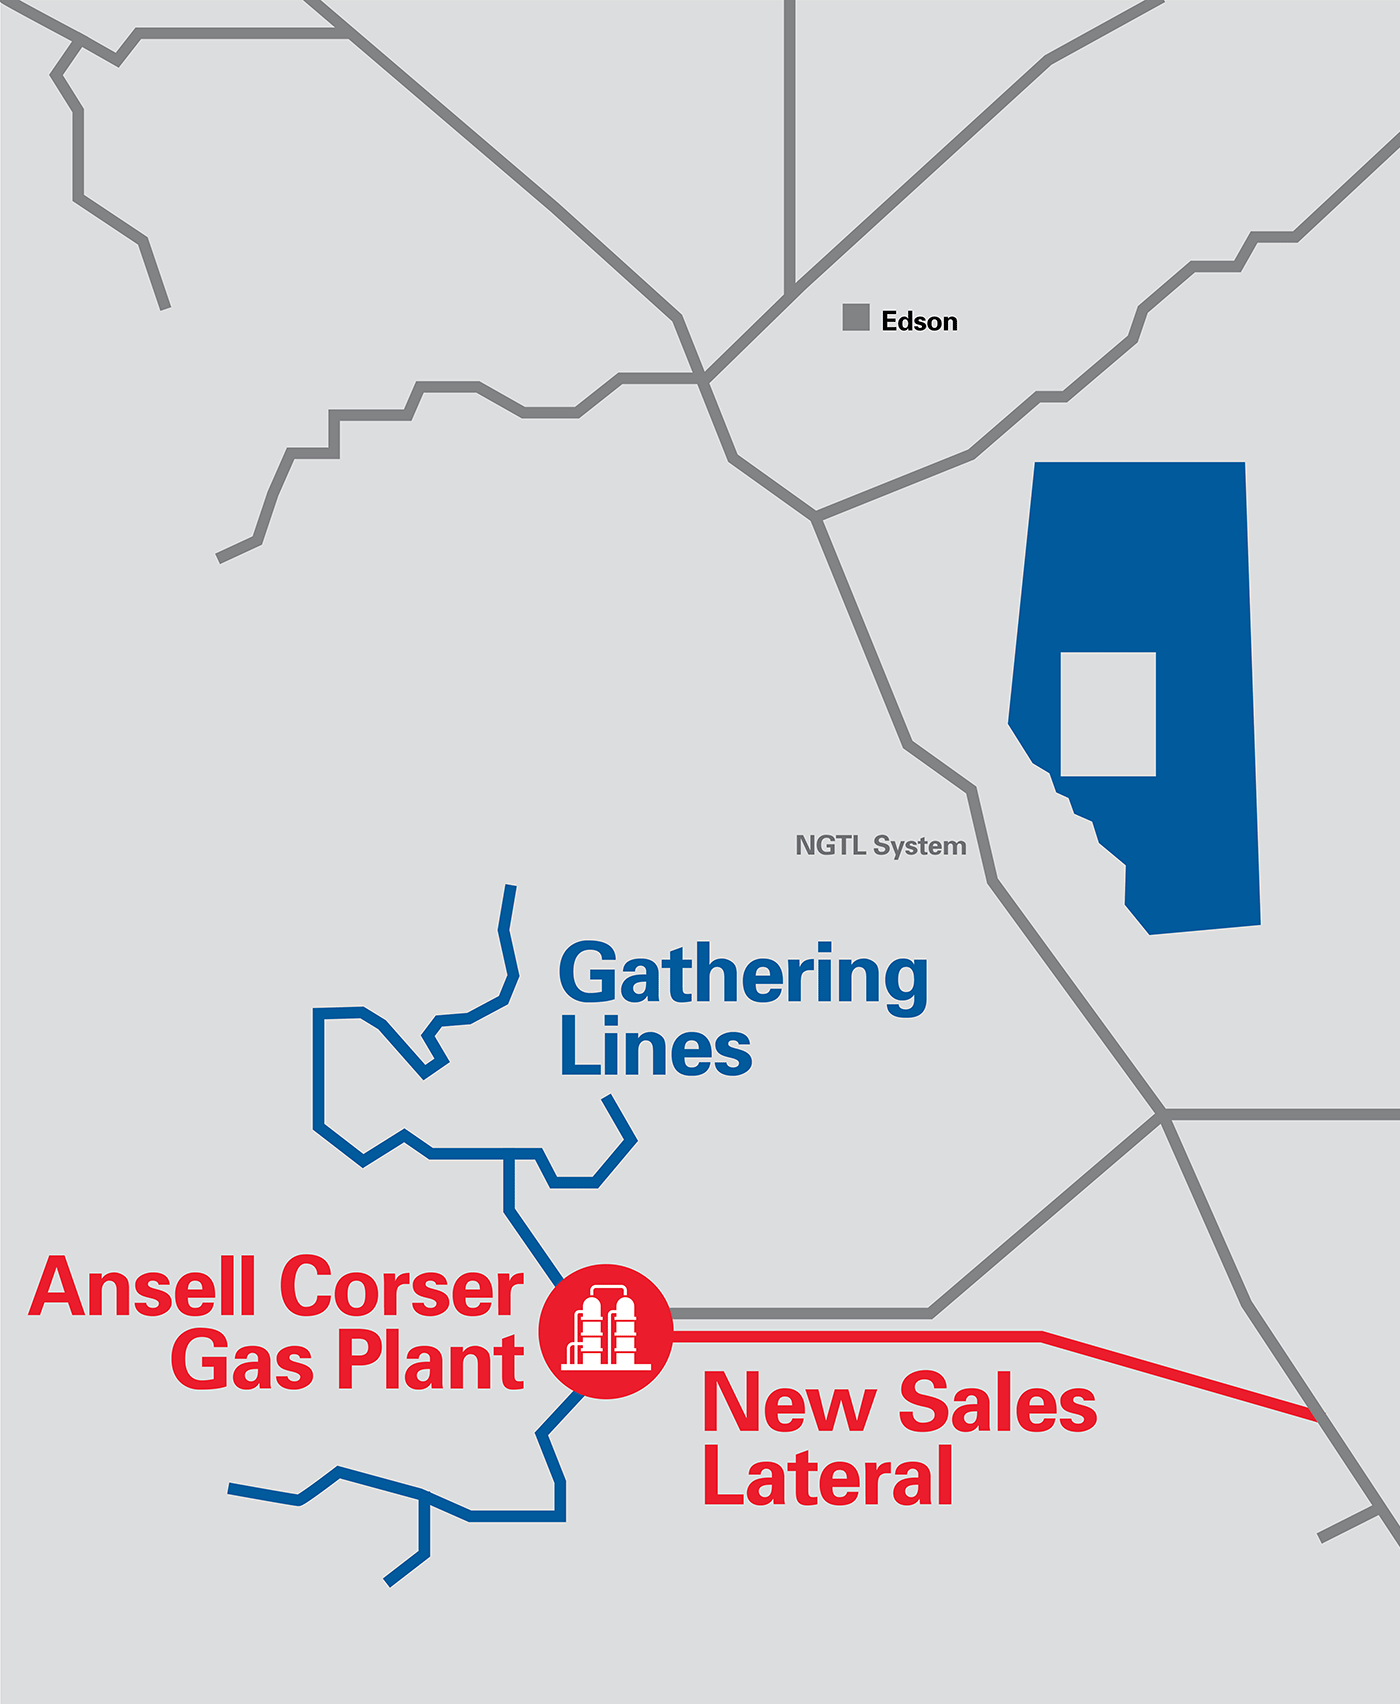 Ansell Corser Gas Plant